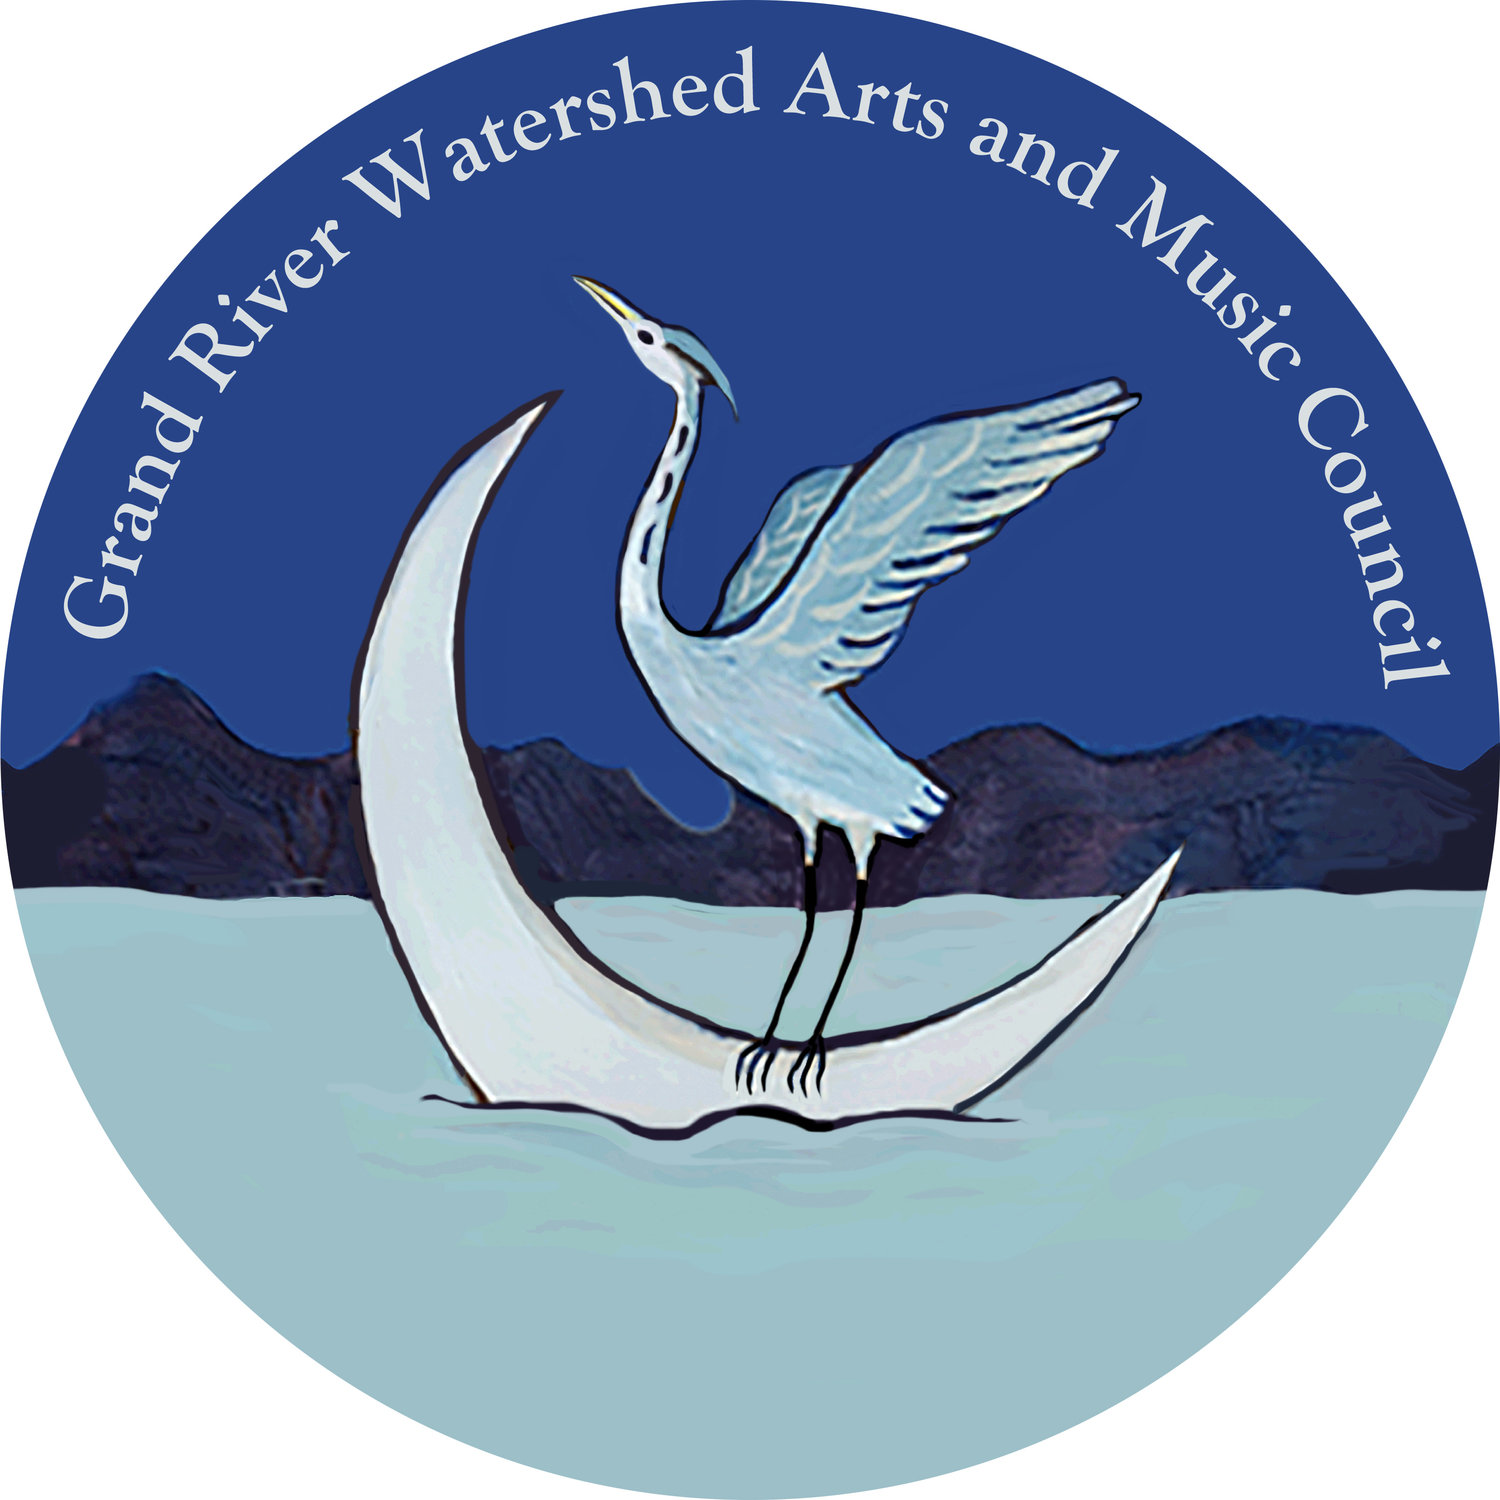 Grand River Watershed Arts and Music Council (GRWAMC)